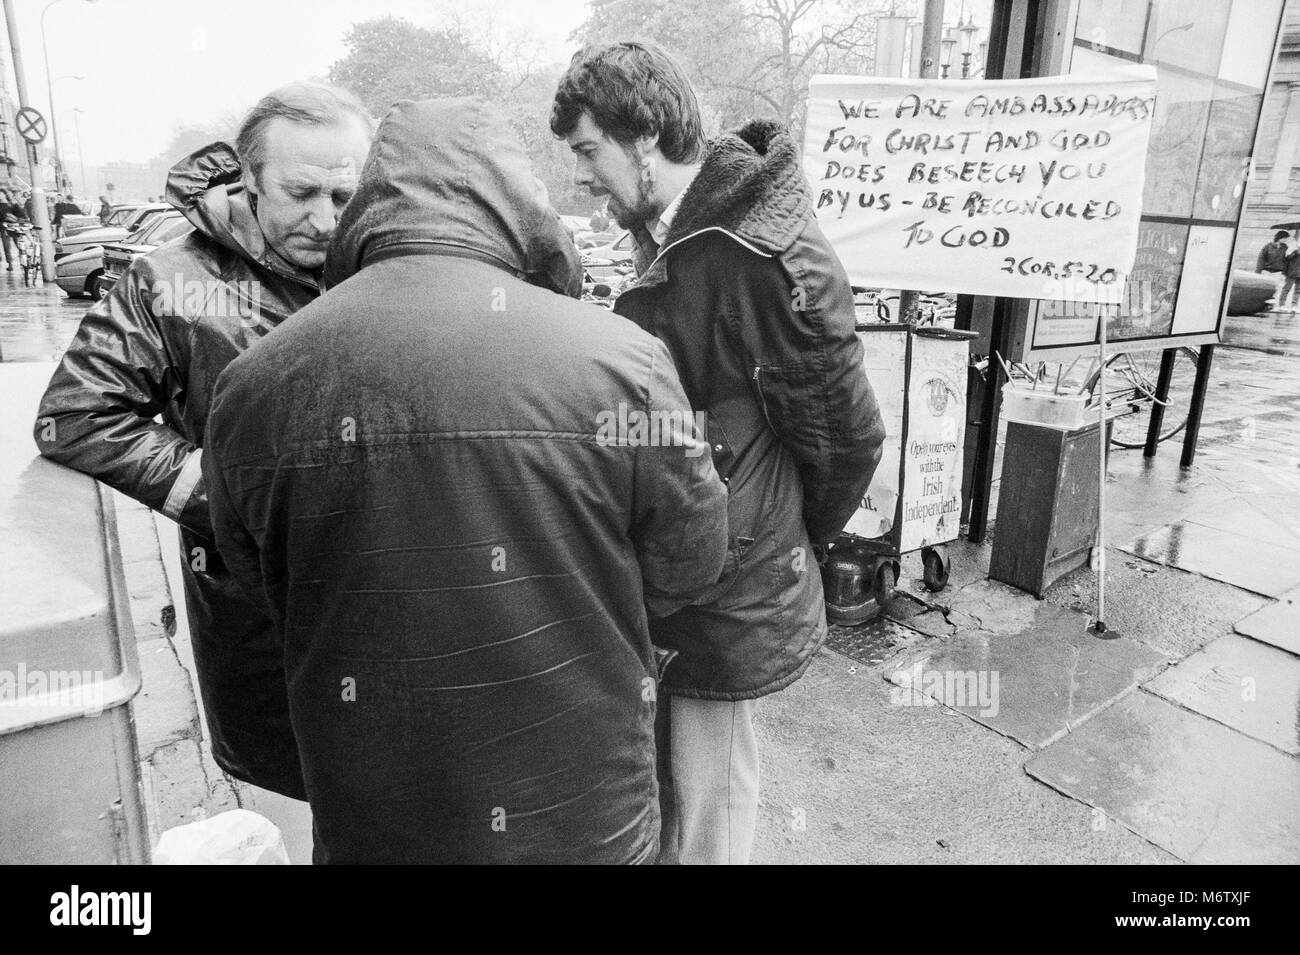 Three men preaching in the street at St Stephens Green, Dublin City Center, Ireland, Archival photograph from April - Stock Image